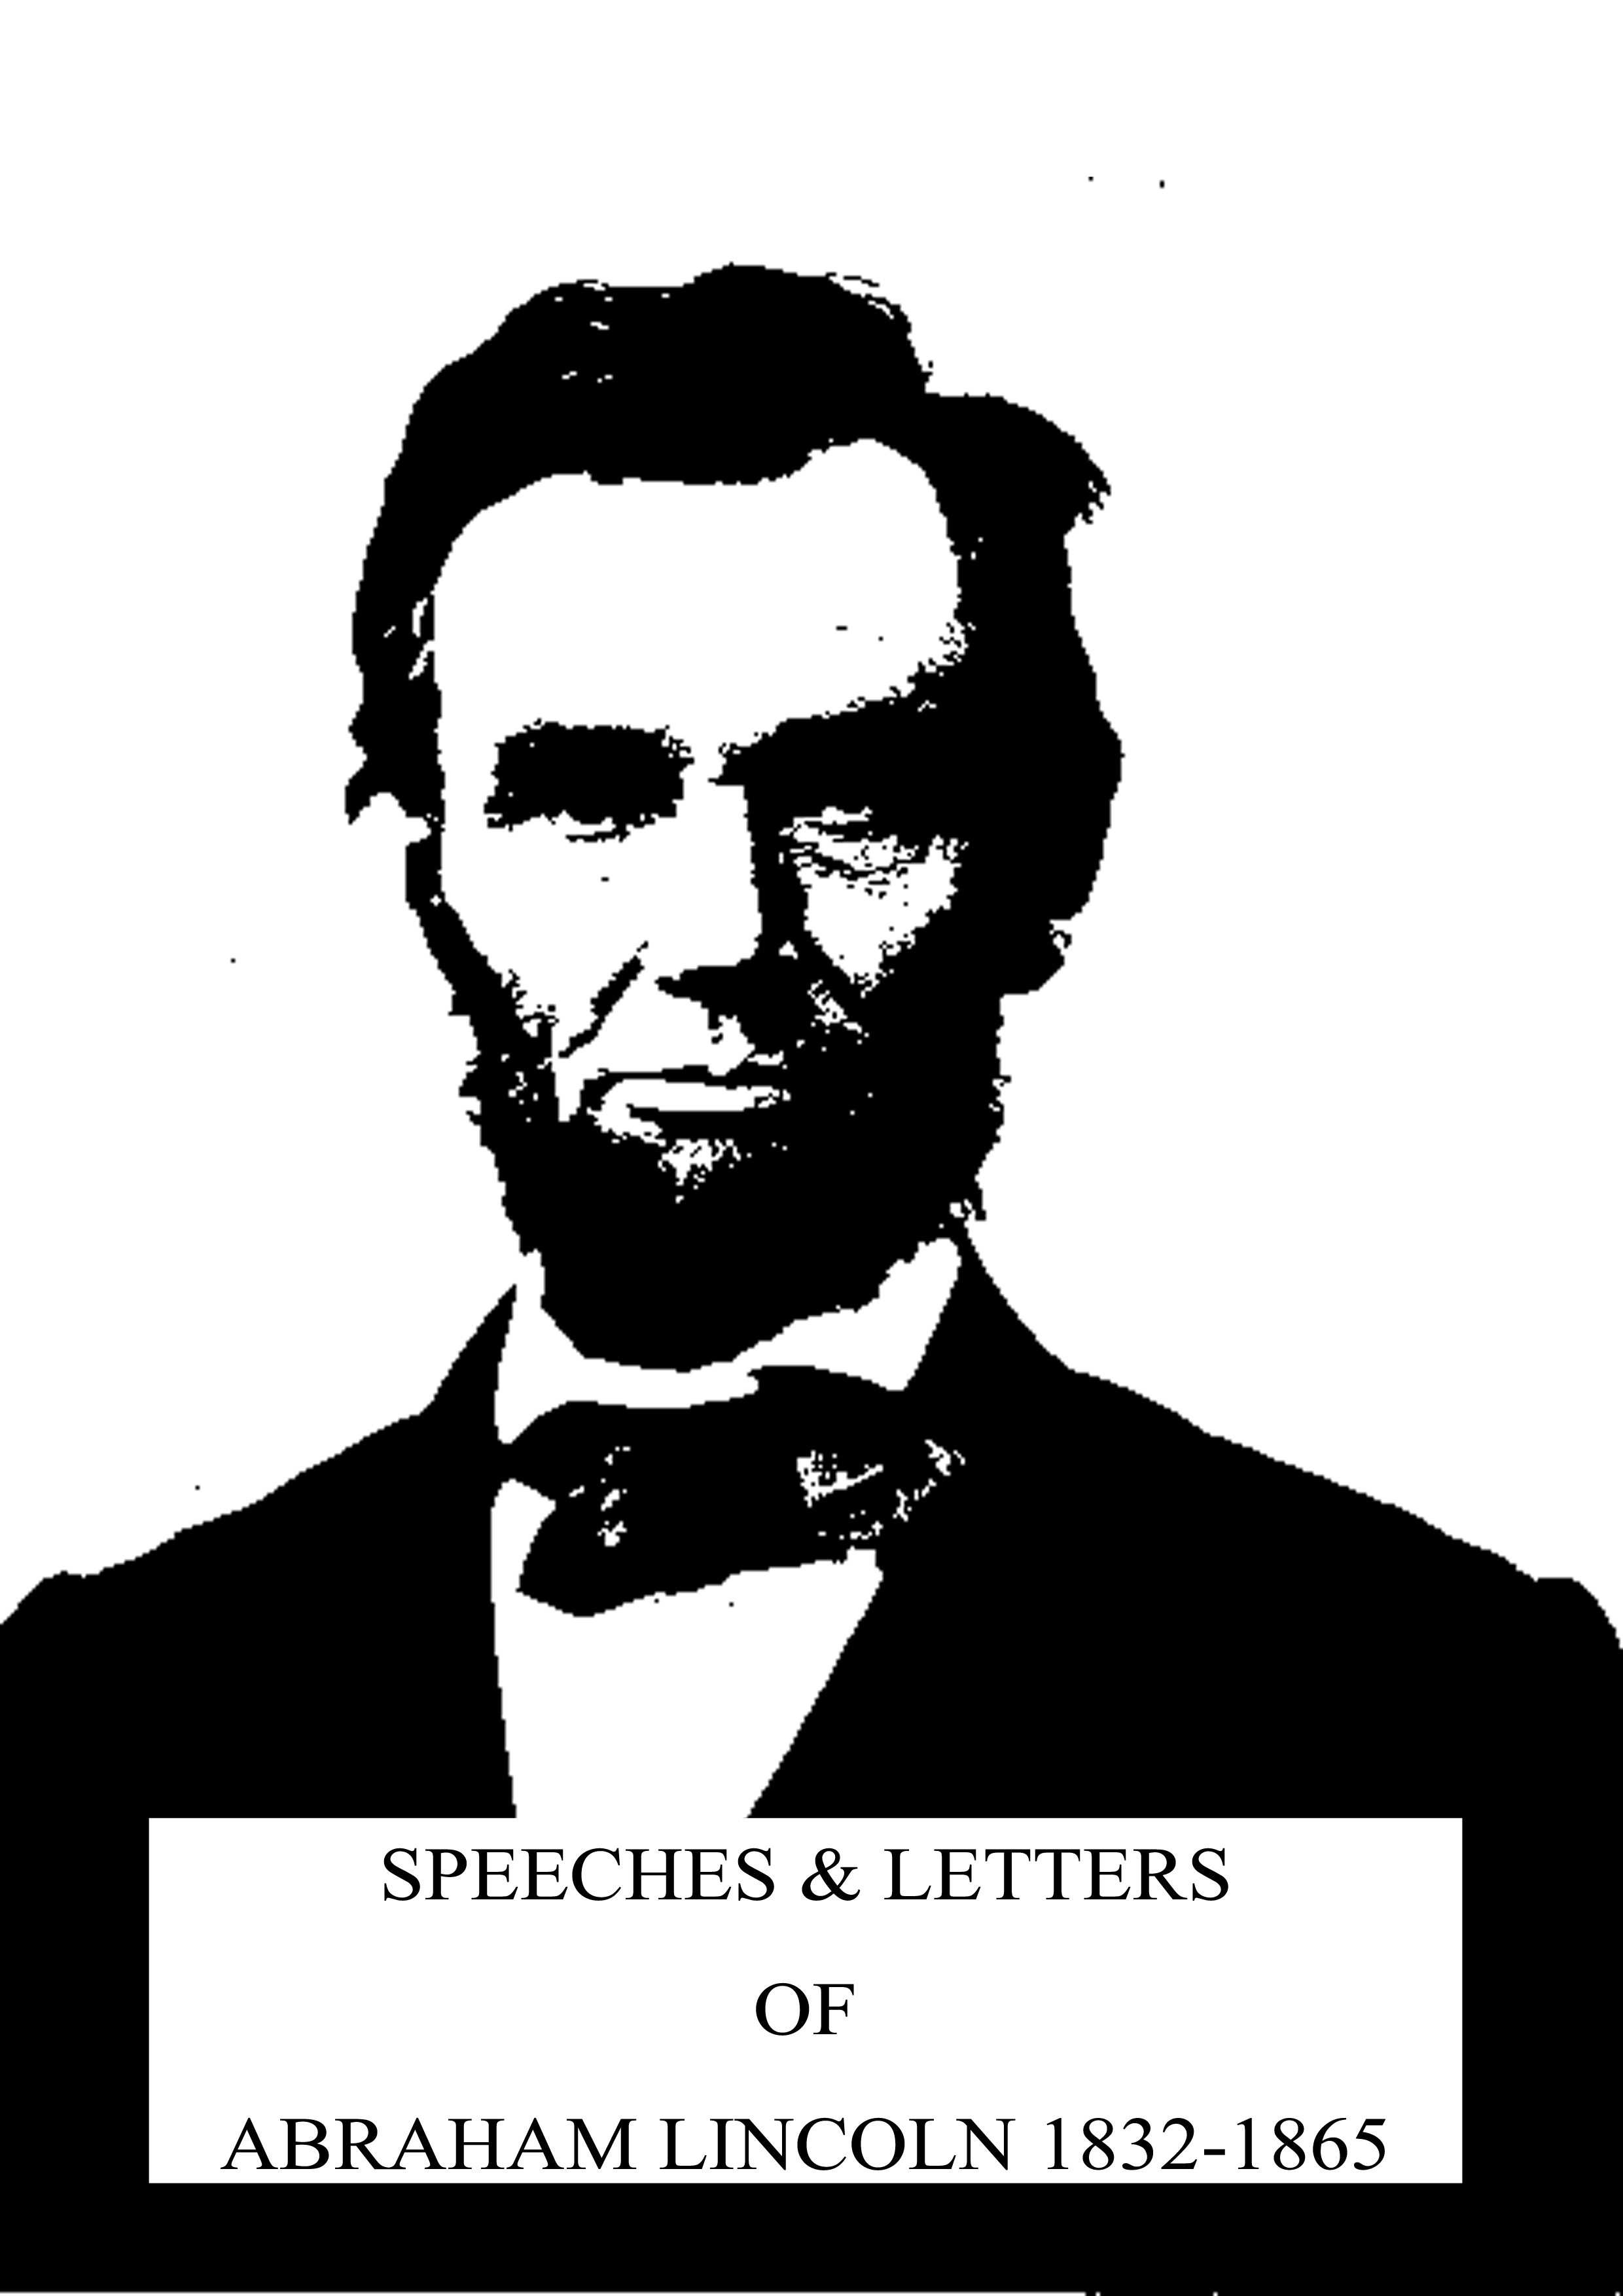 Speeches & Letters Of Abraham Lincoln 1832-1865